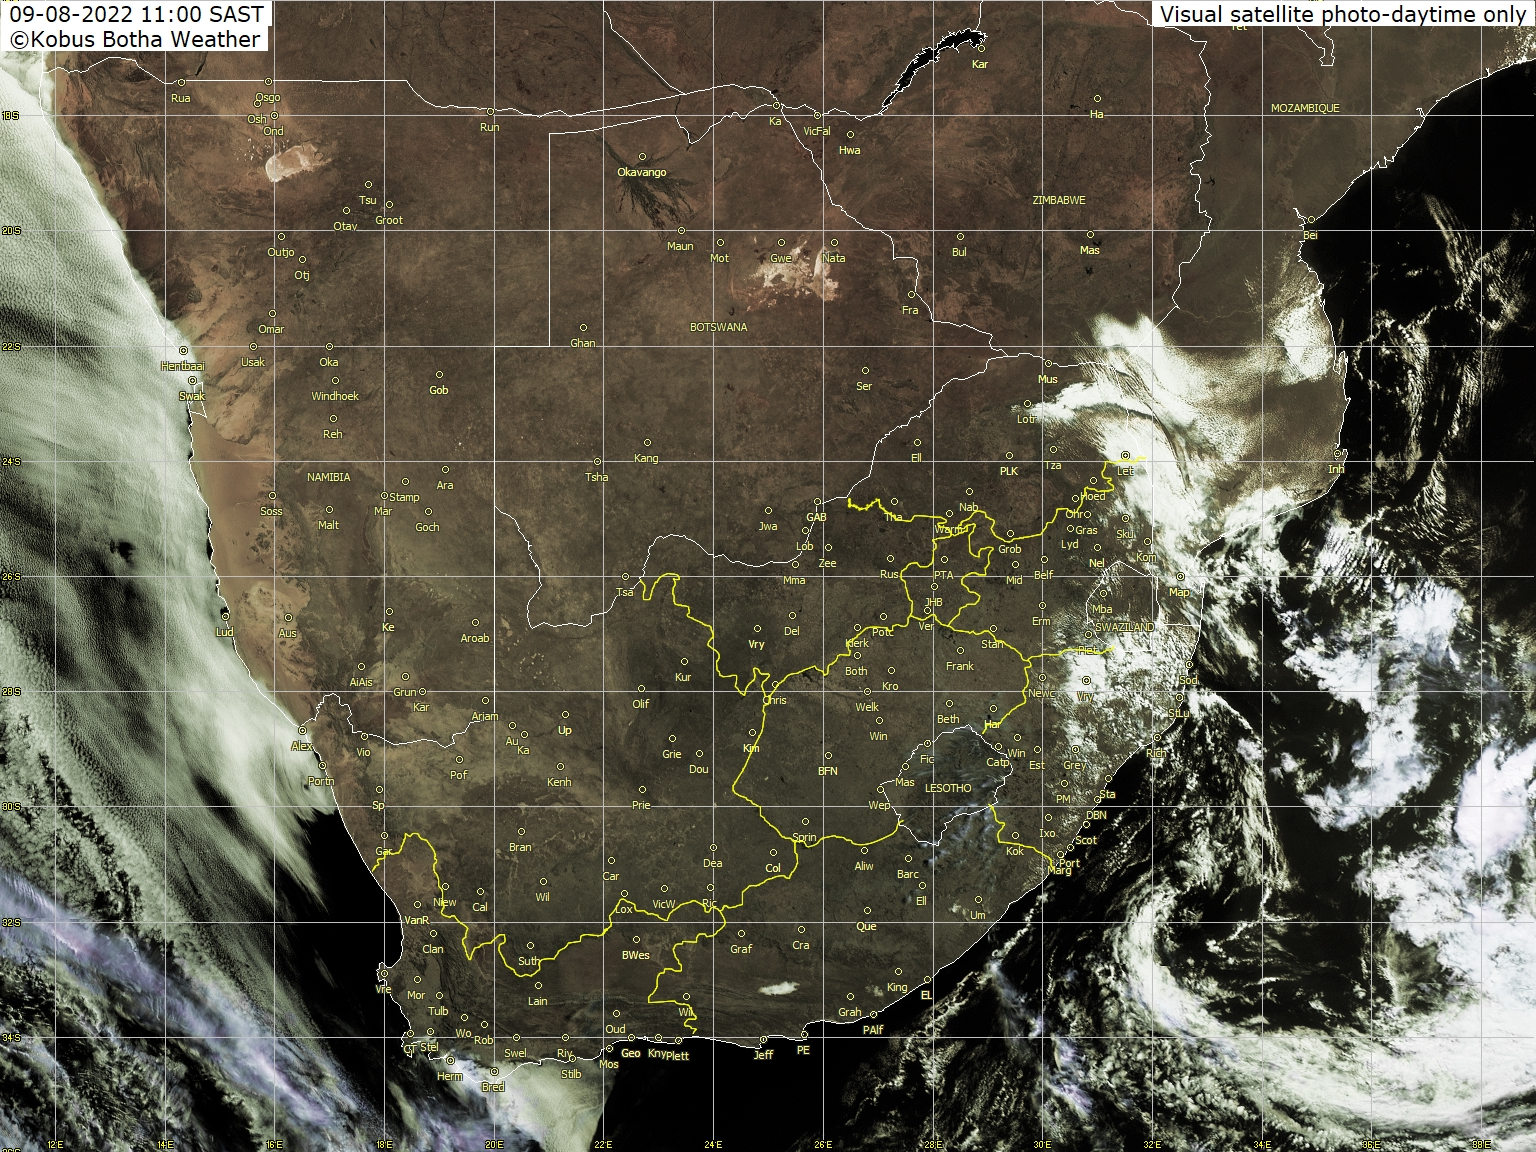 Meteosat - visible - South Africa, Namibia, Botswana